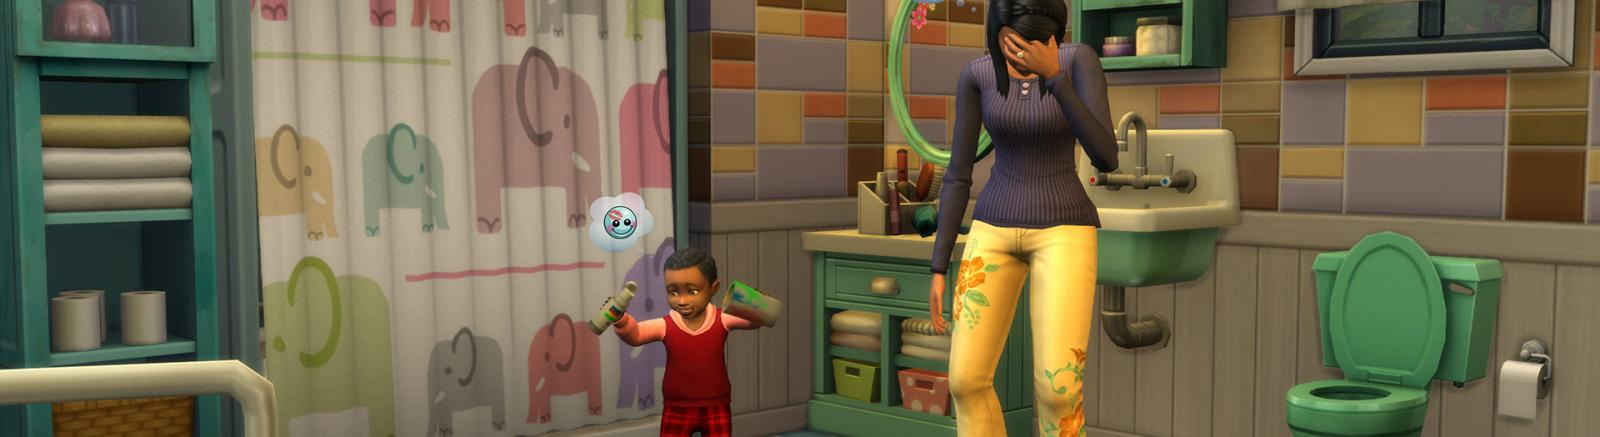 sims-4-pack-jeu-gamepack-parents-banniere-banner-04.jpg